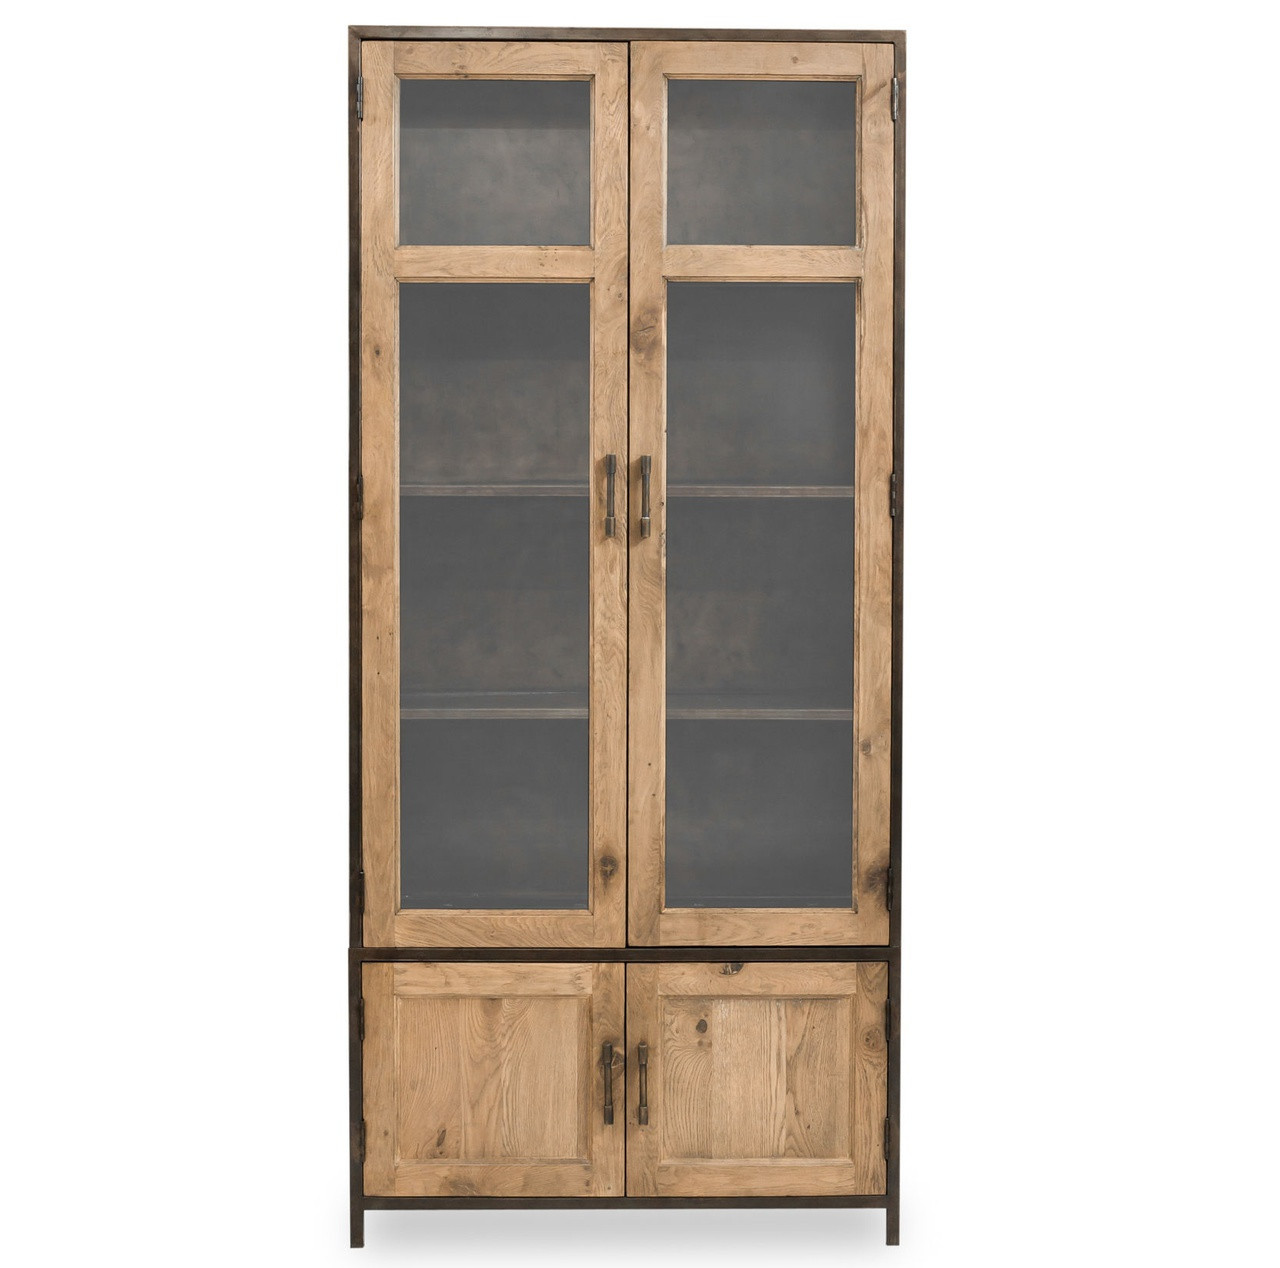 Dominic Industrial Metal Oak Tall Cabinet With Glass Doors Zin Home